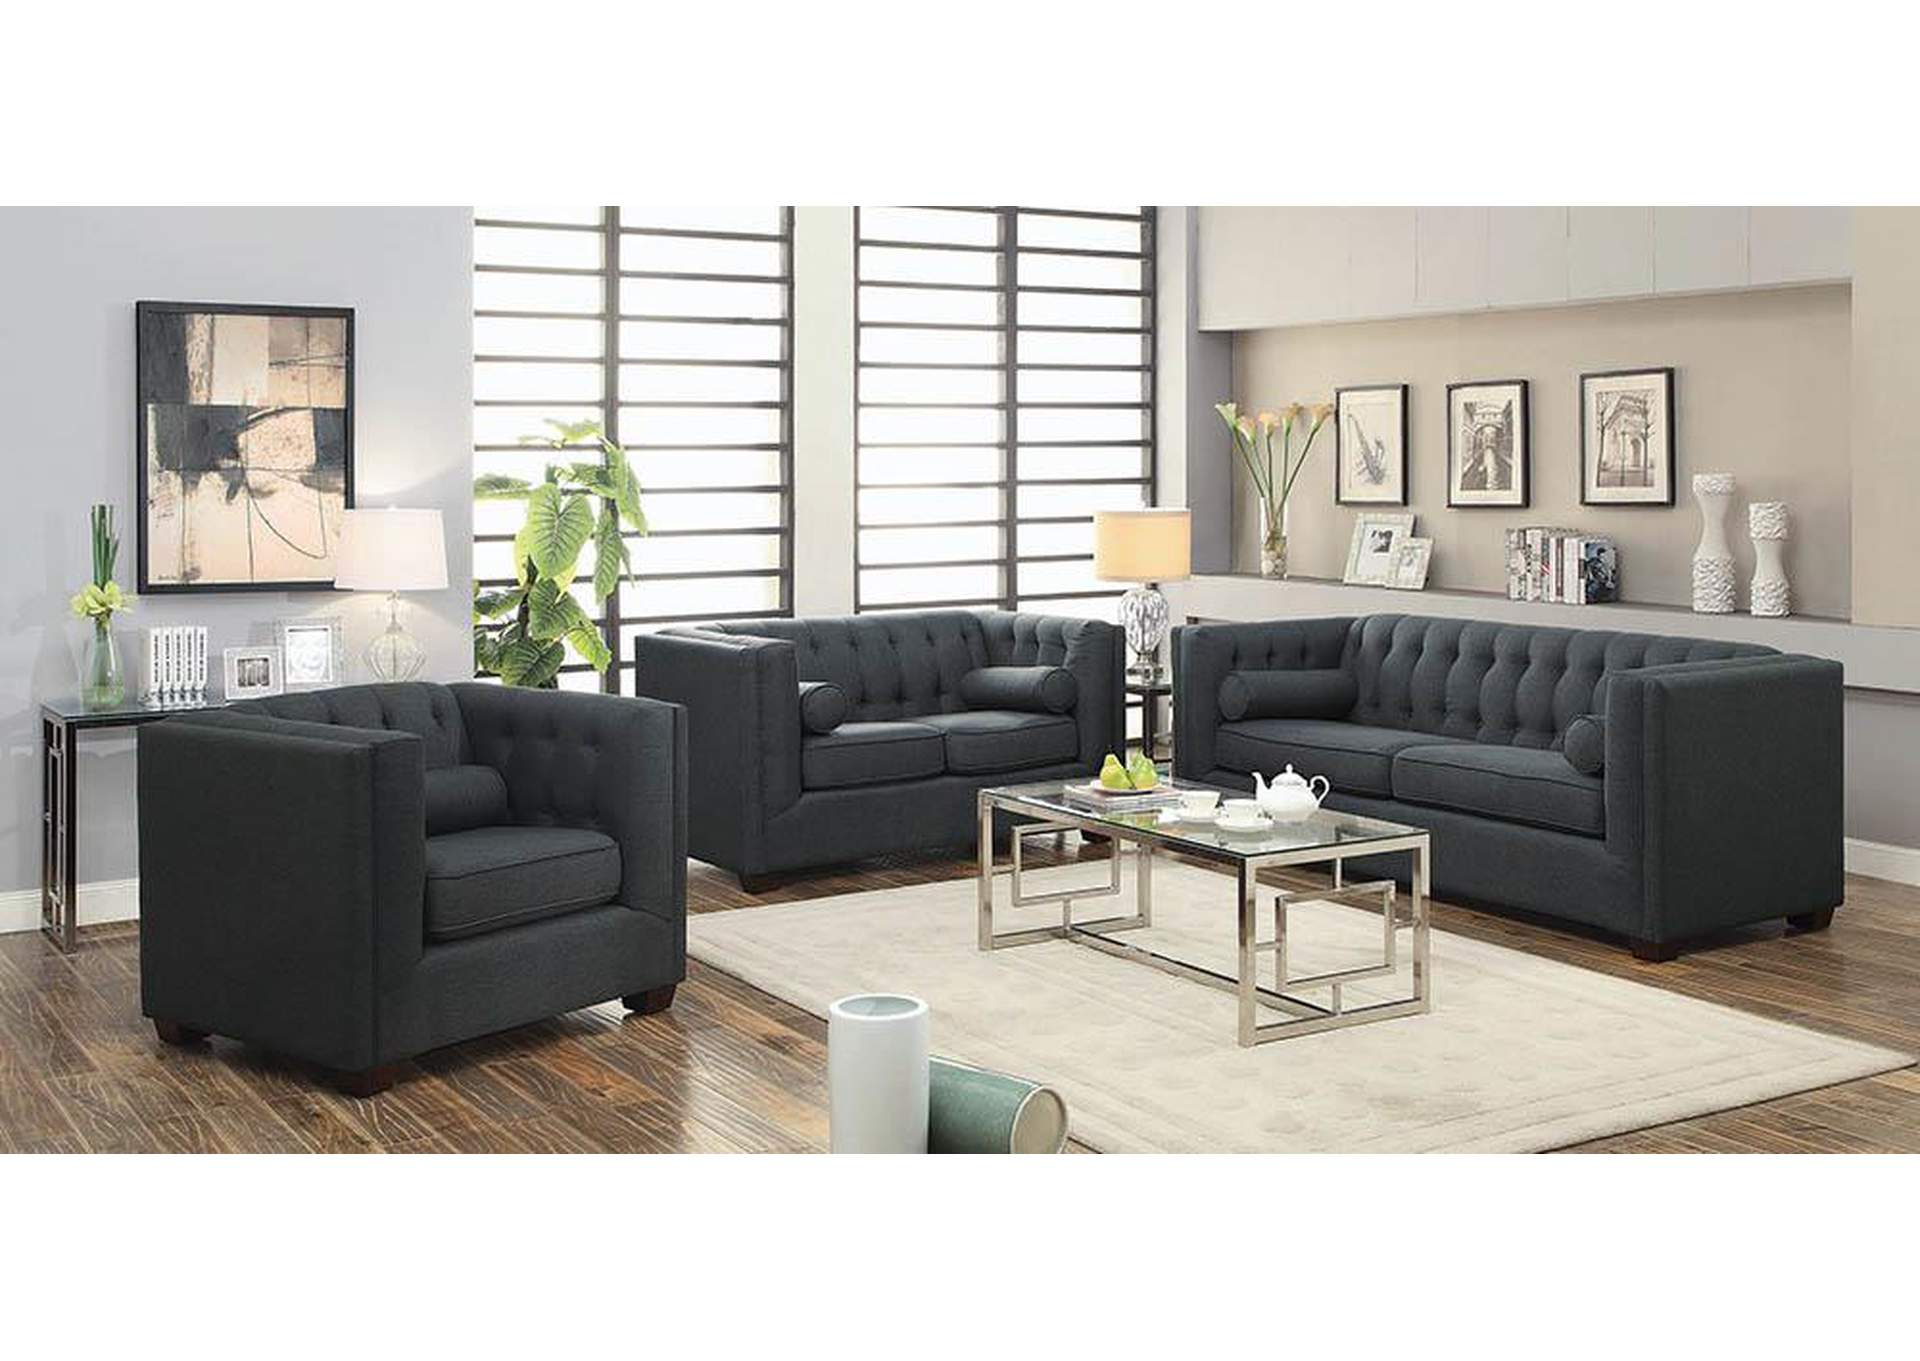 Cairns Brown Sofa,ABF Coaster Furniture